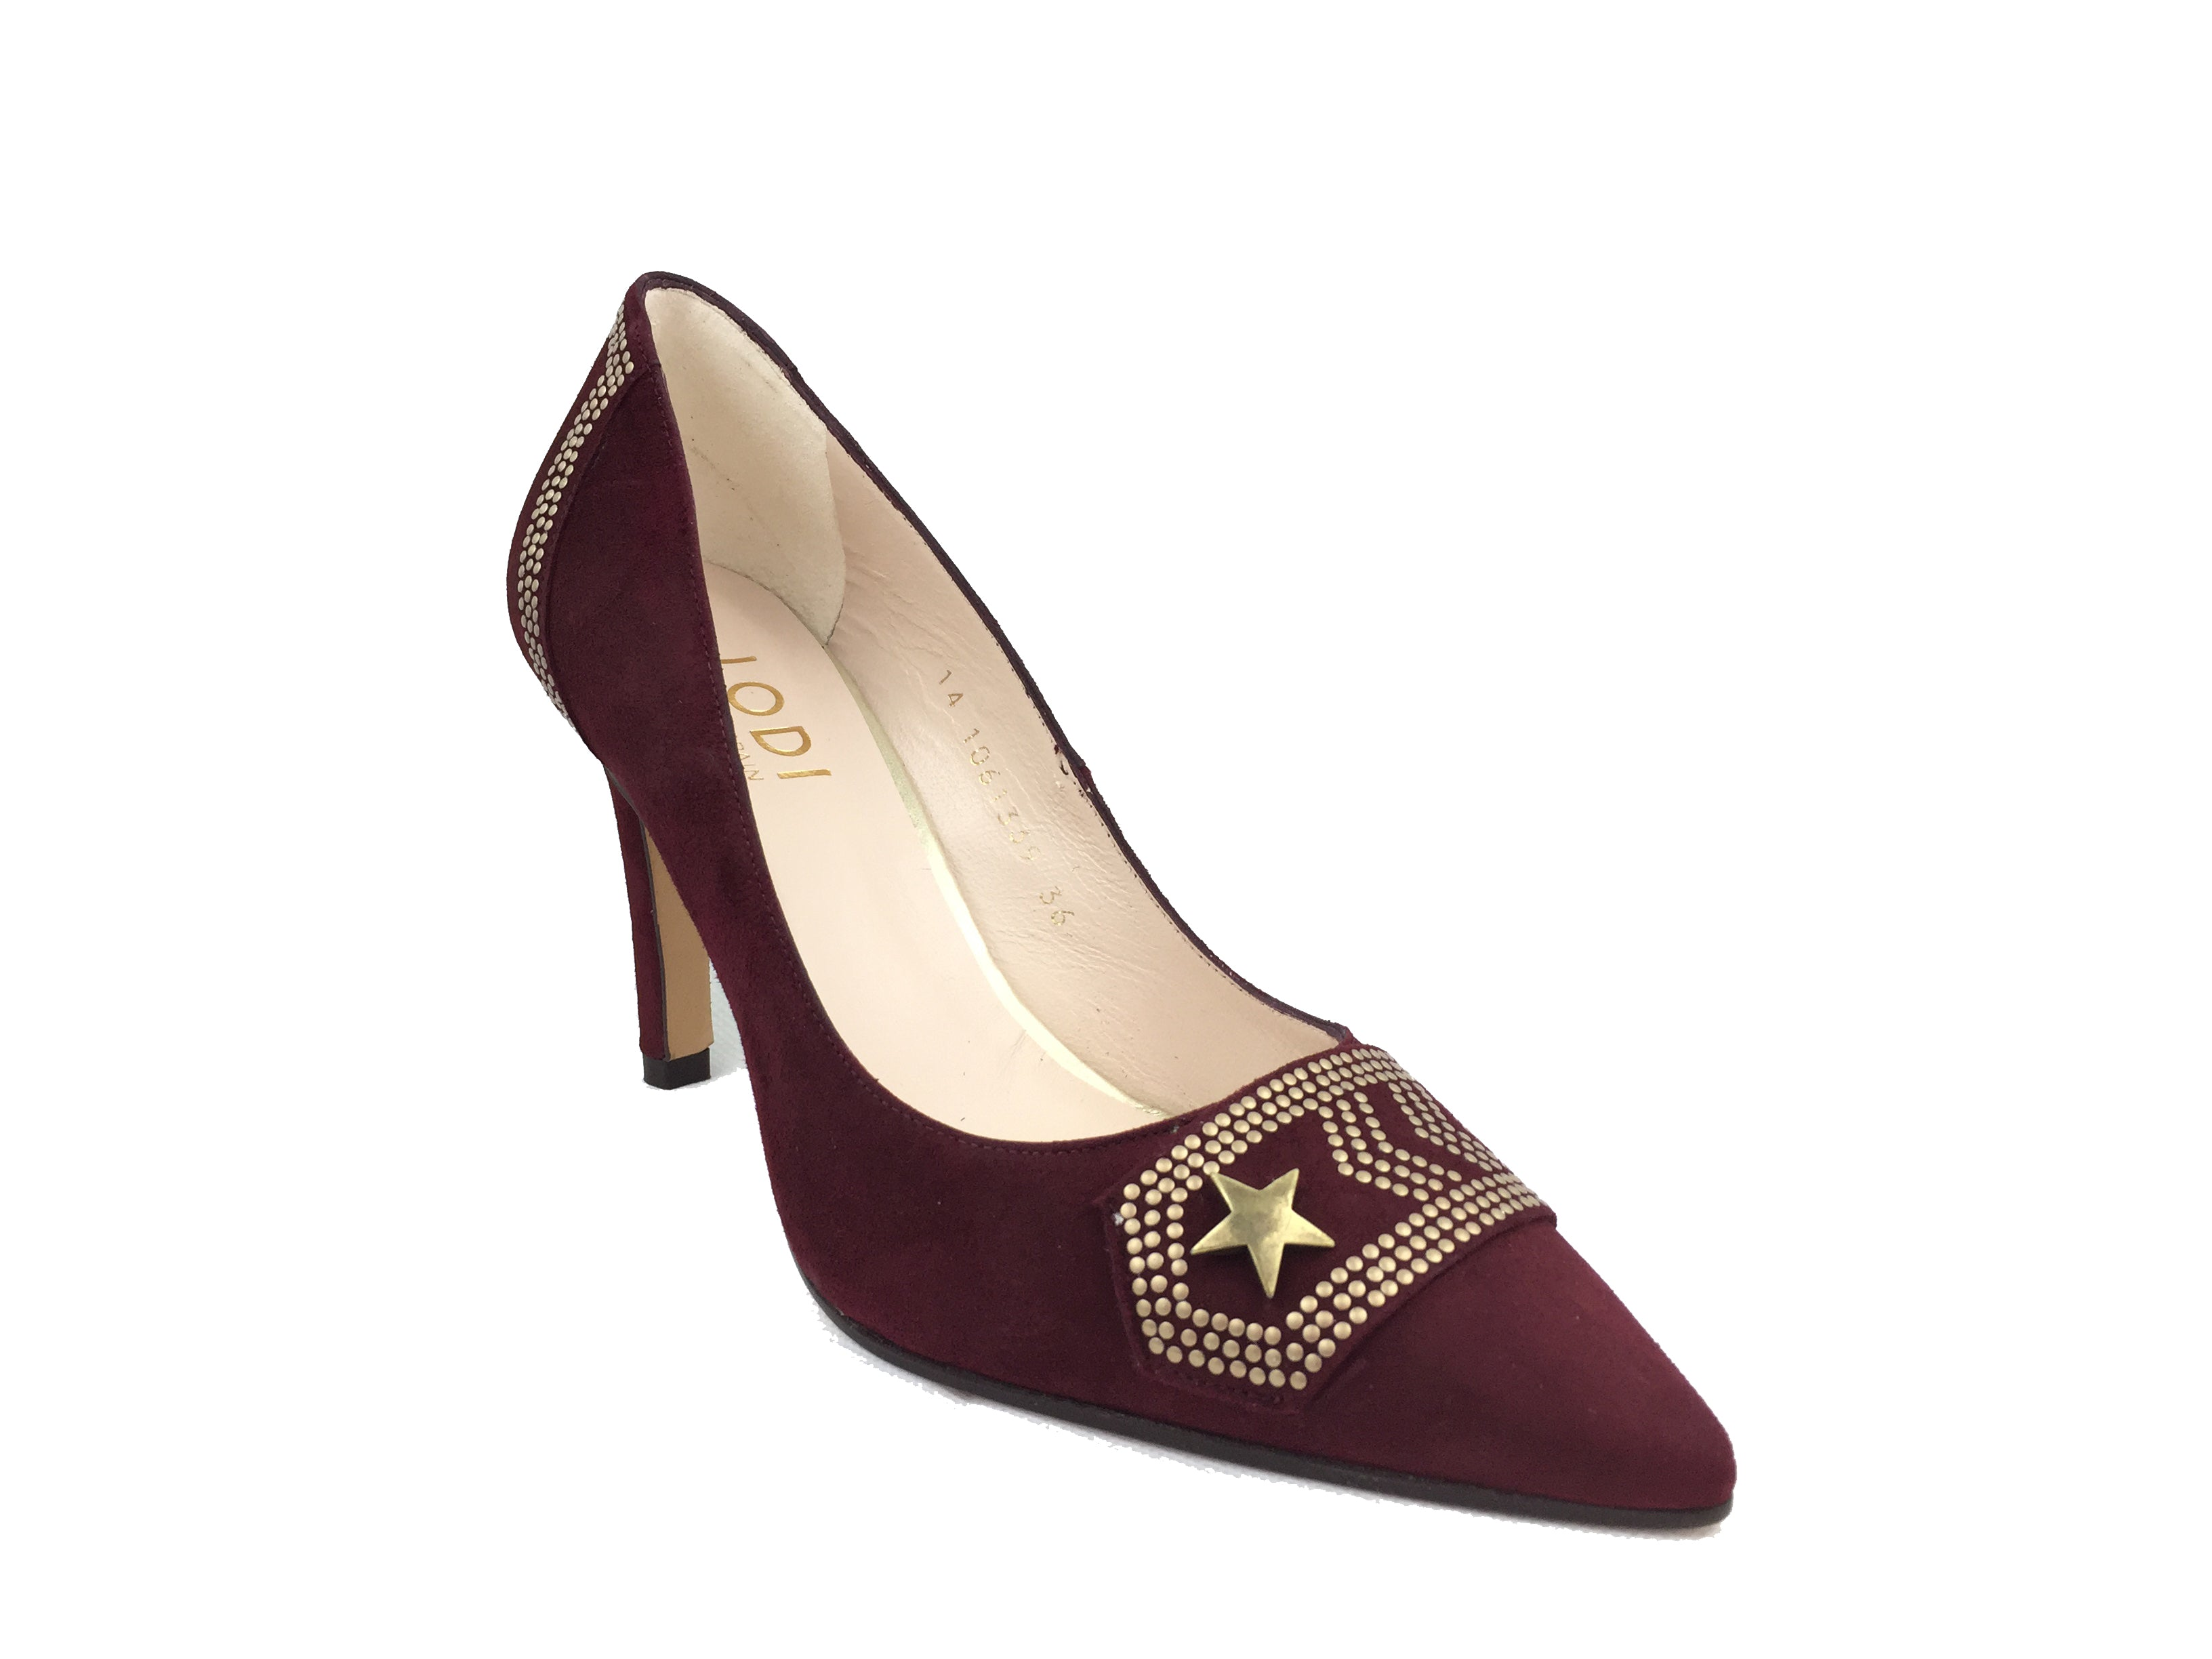 a065698ee5a Deep wine coloured suede Lodi court heel. Gold military style  embellishments across back and front